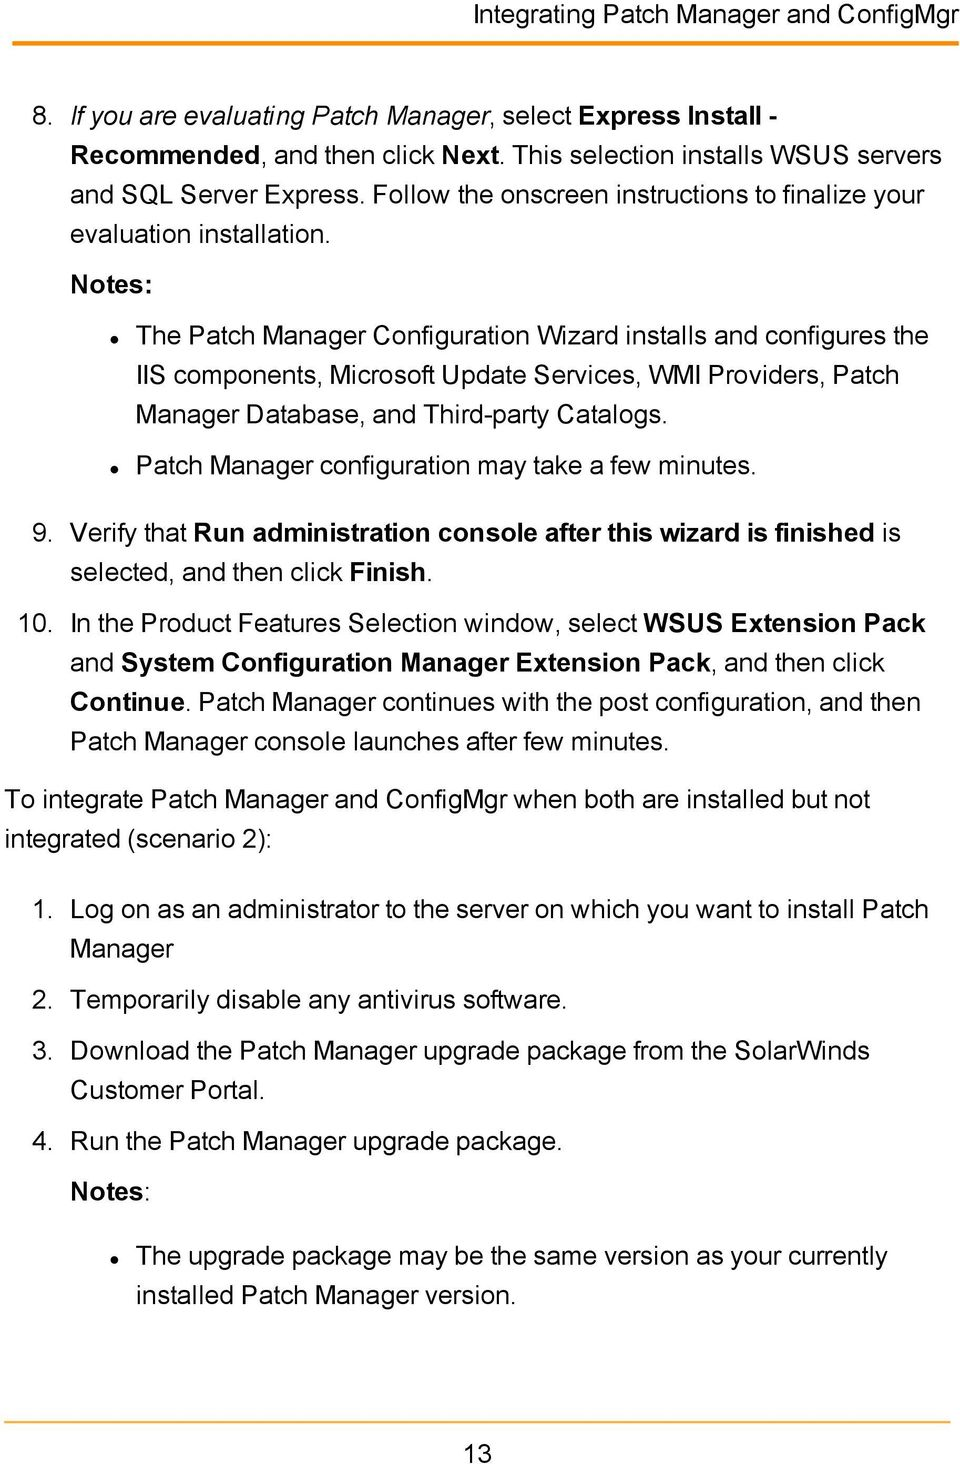 Notes: The Patch Manager Configuration Wizard installs and configures the IIS components, Microsoft Update Services, WMI Providers, Patch Manager Database, and Third-party Catalogs.